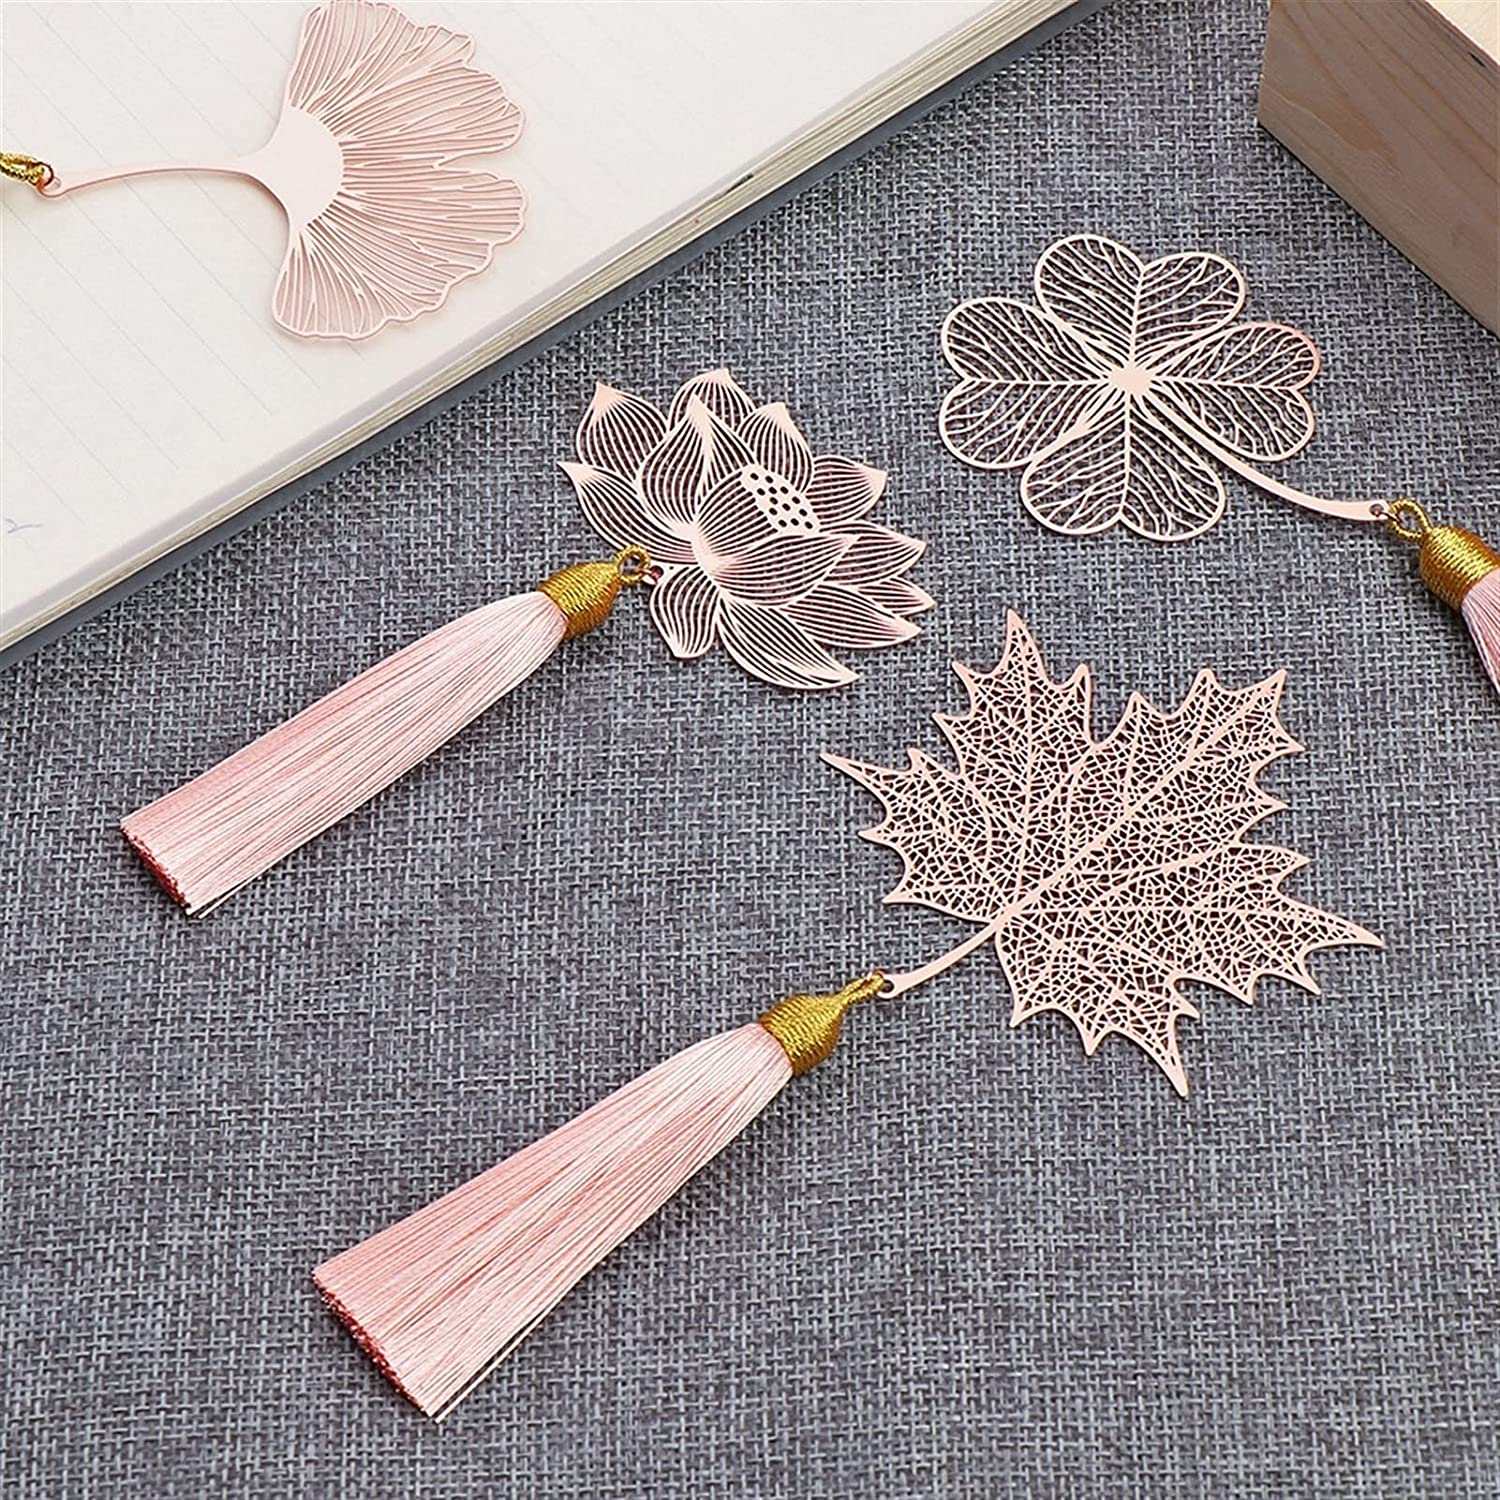 WZRY Chinese Bookmarks Style Super sale security Creative Maple Hollow Le Leaf Vein